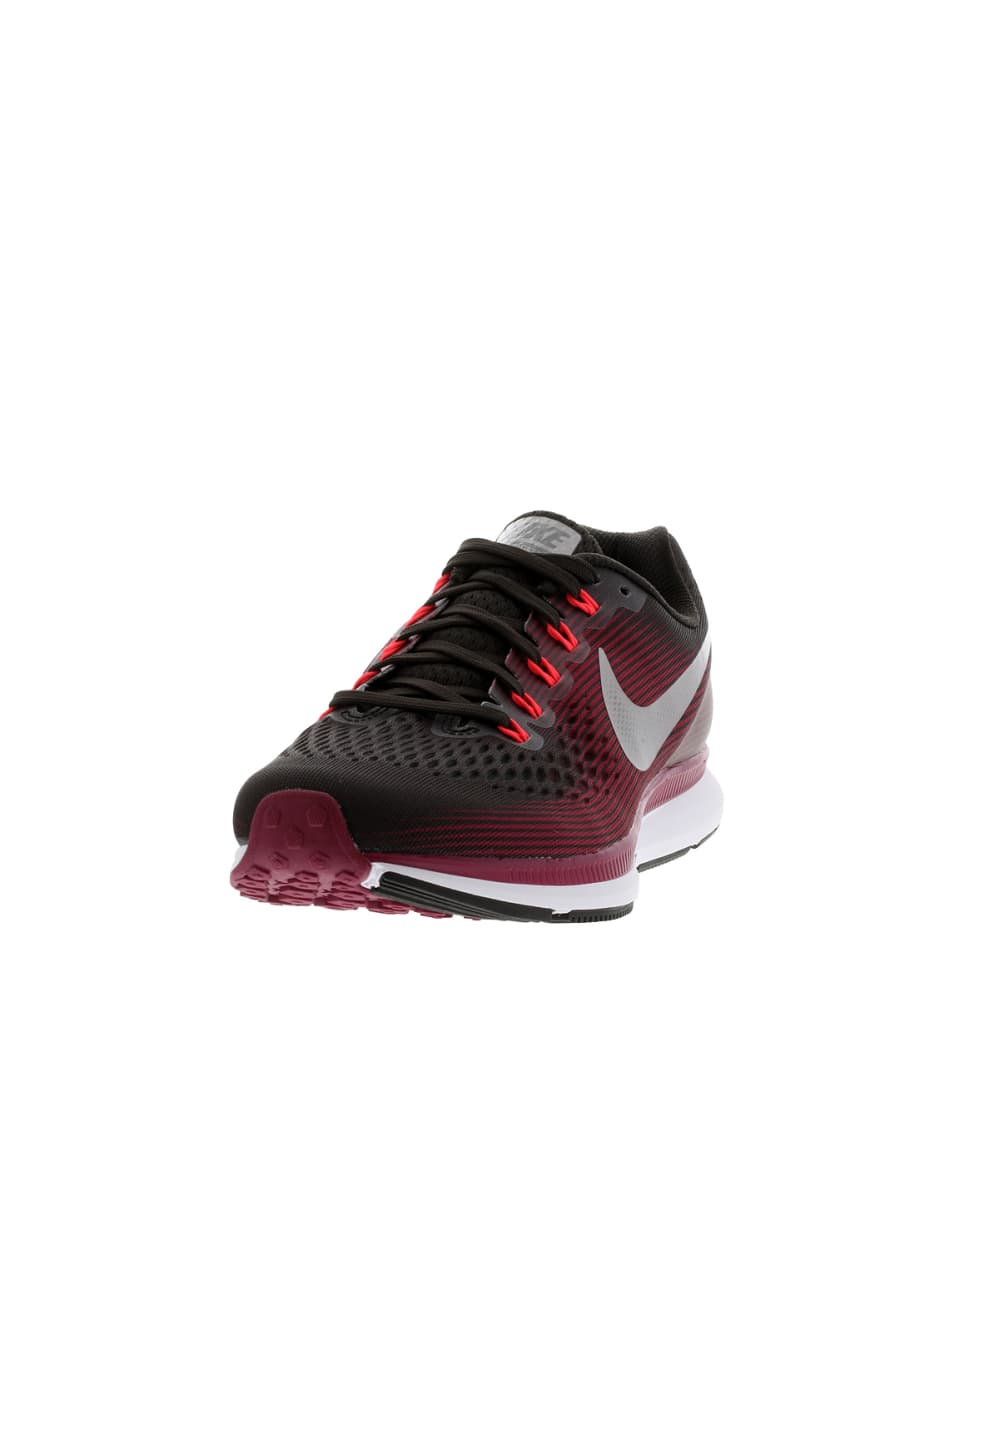 bf9db3d4671fa Next. -60%. This product is currently out of stock. Nike. Air Zoom Pegasus  34 (Gem) - Running shoes for Women